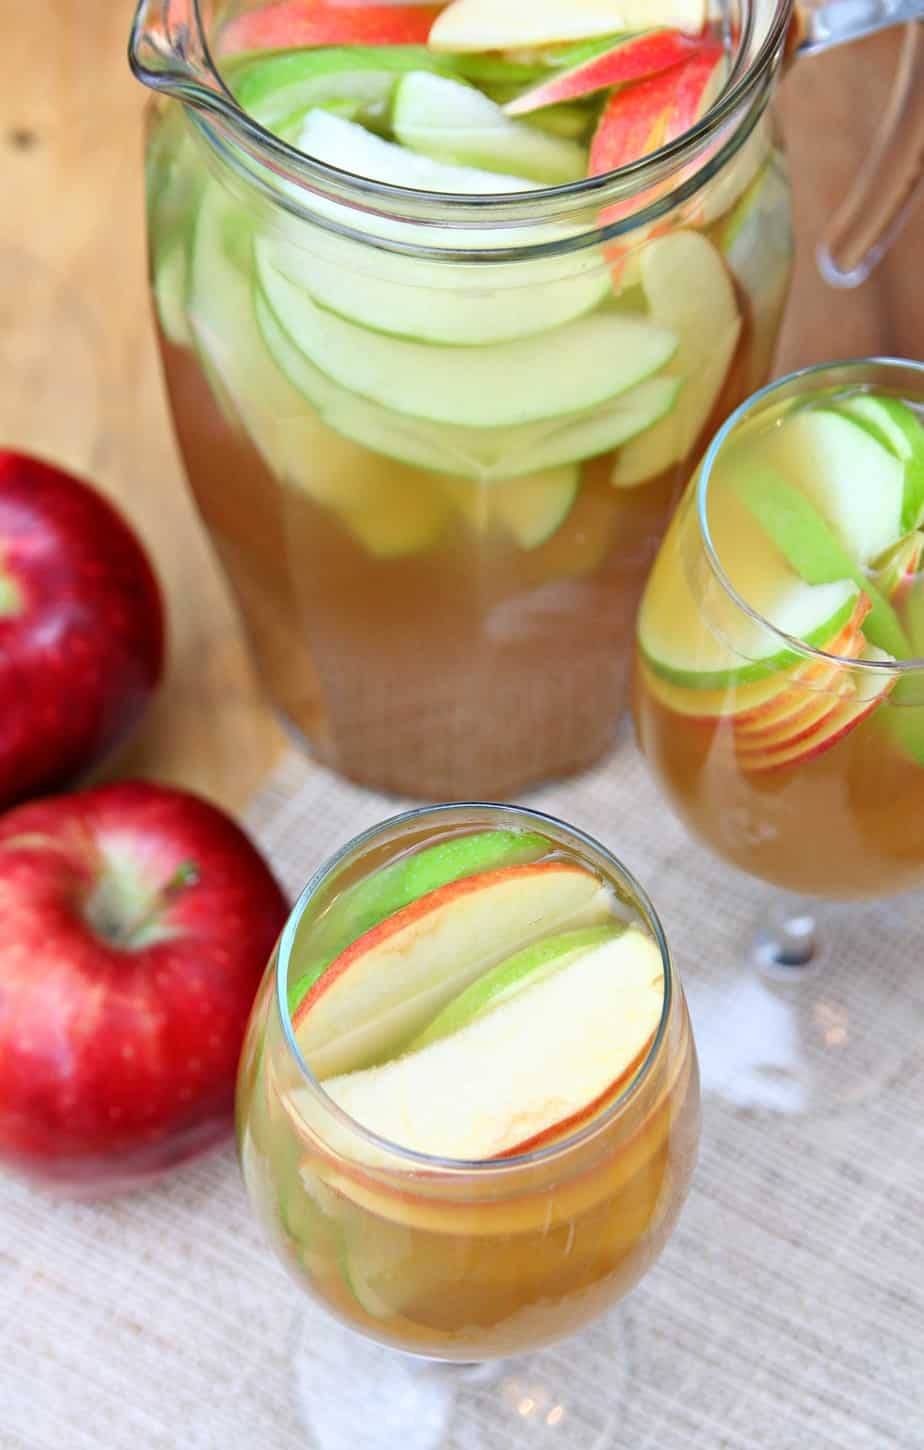 ... instead of making food, I'm going to be bring Apple Cider Sangria